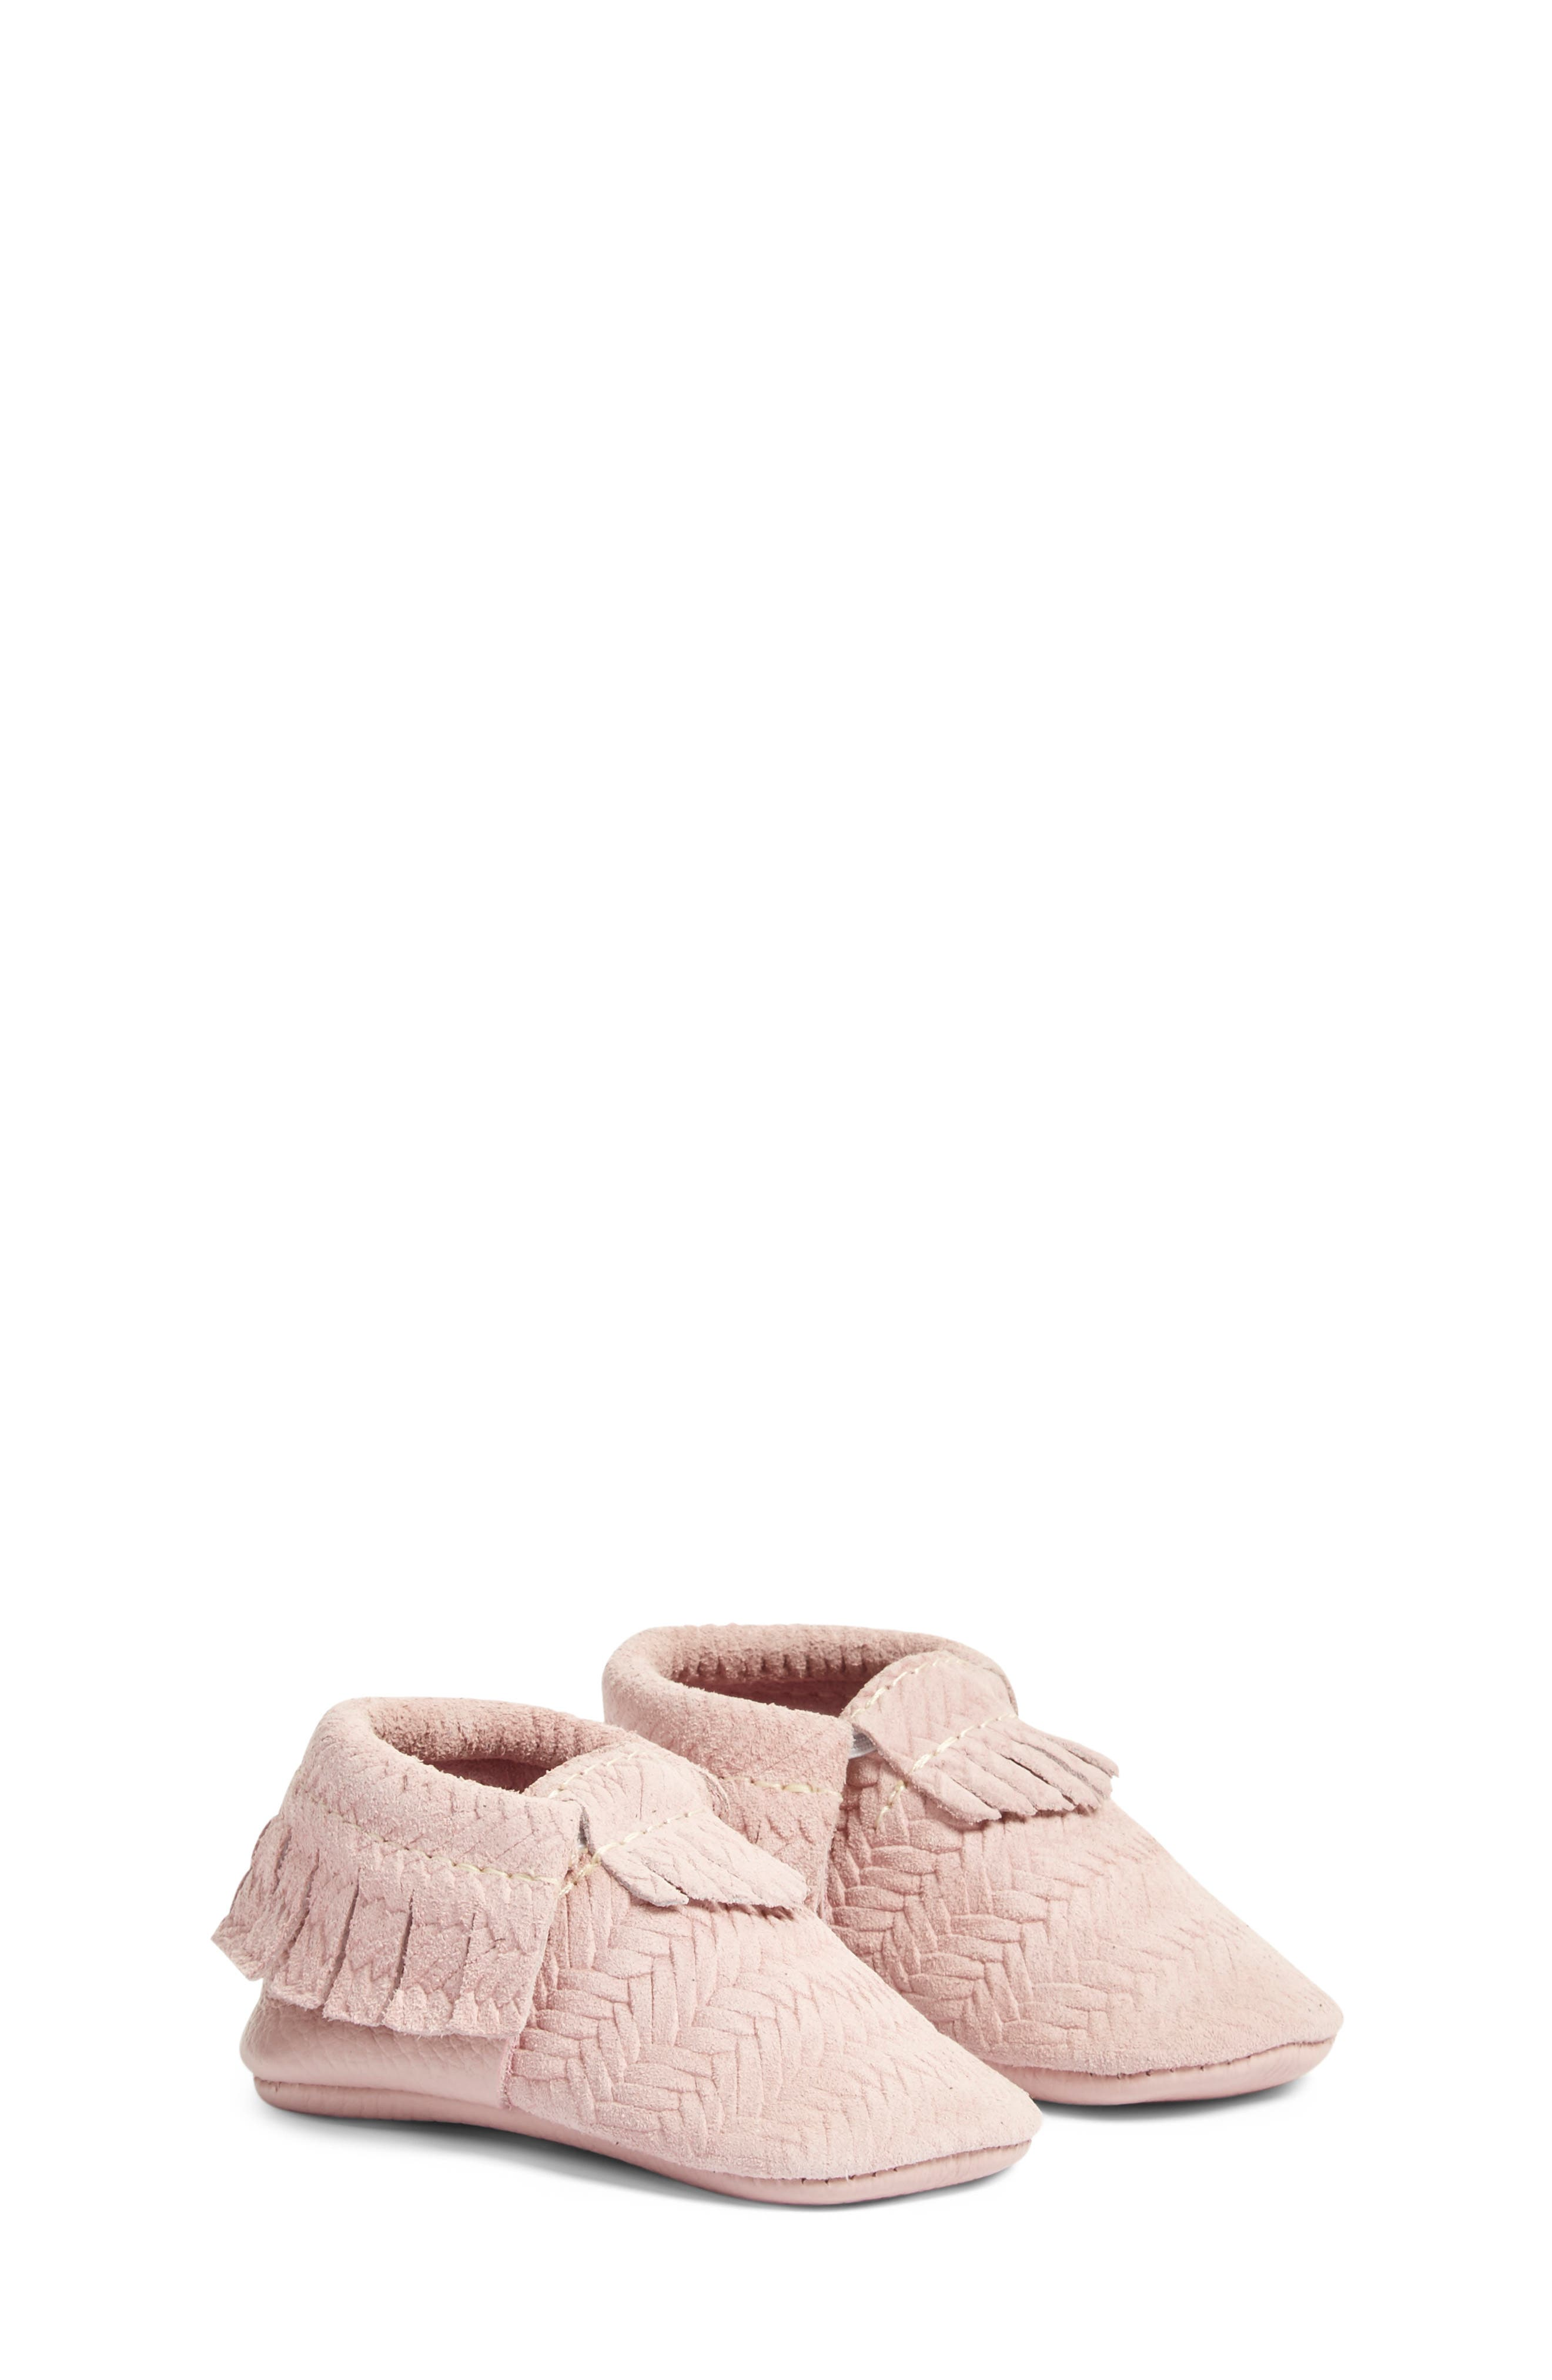 'Cardigan' Woven Leather Moccasin,                             Alternate thumbnail 4, color,                             680